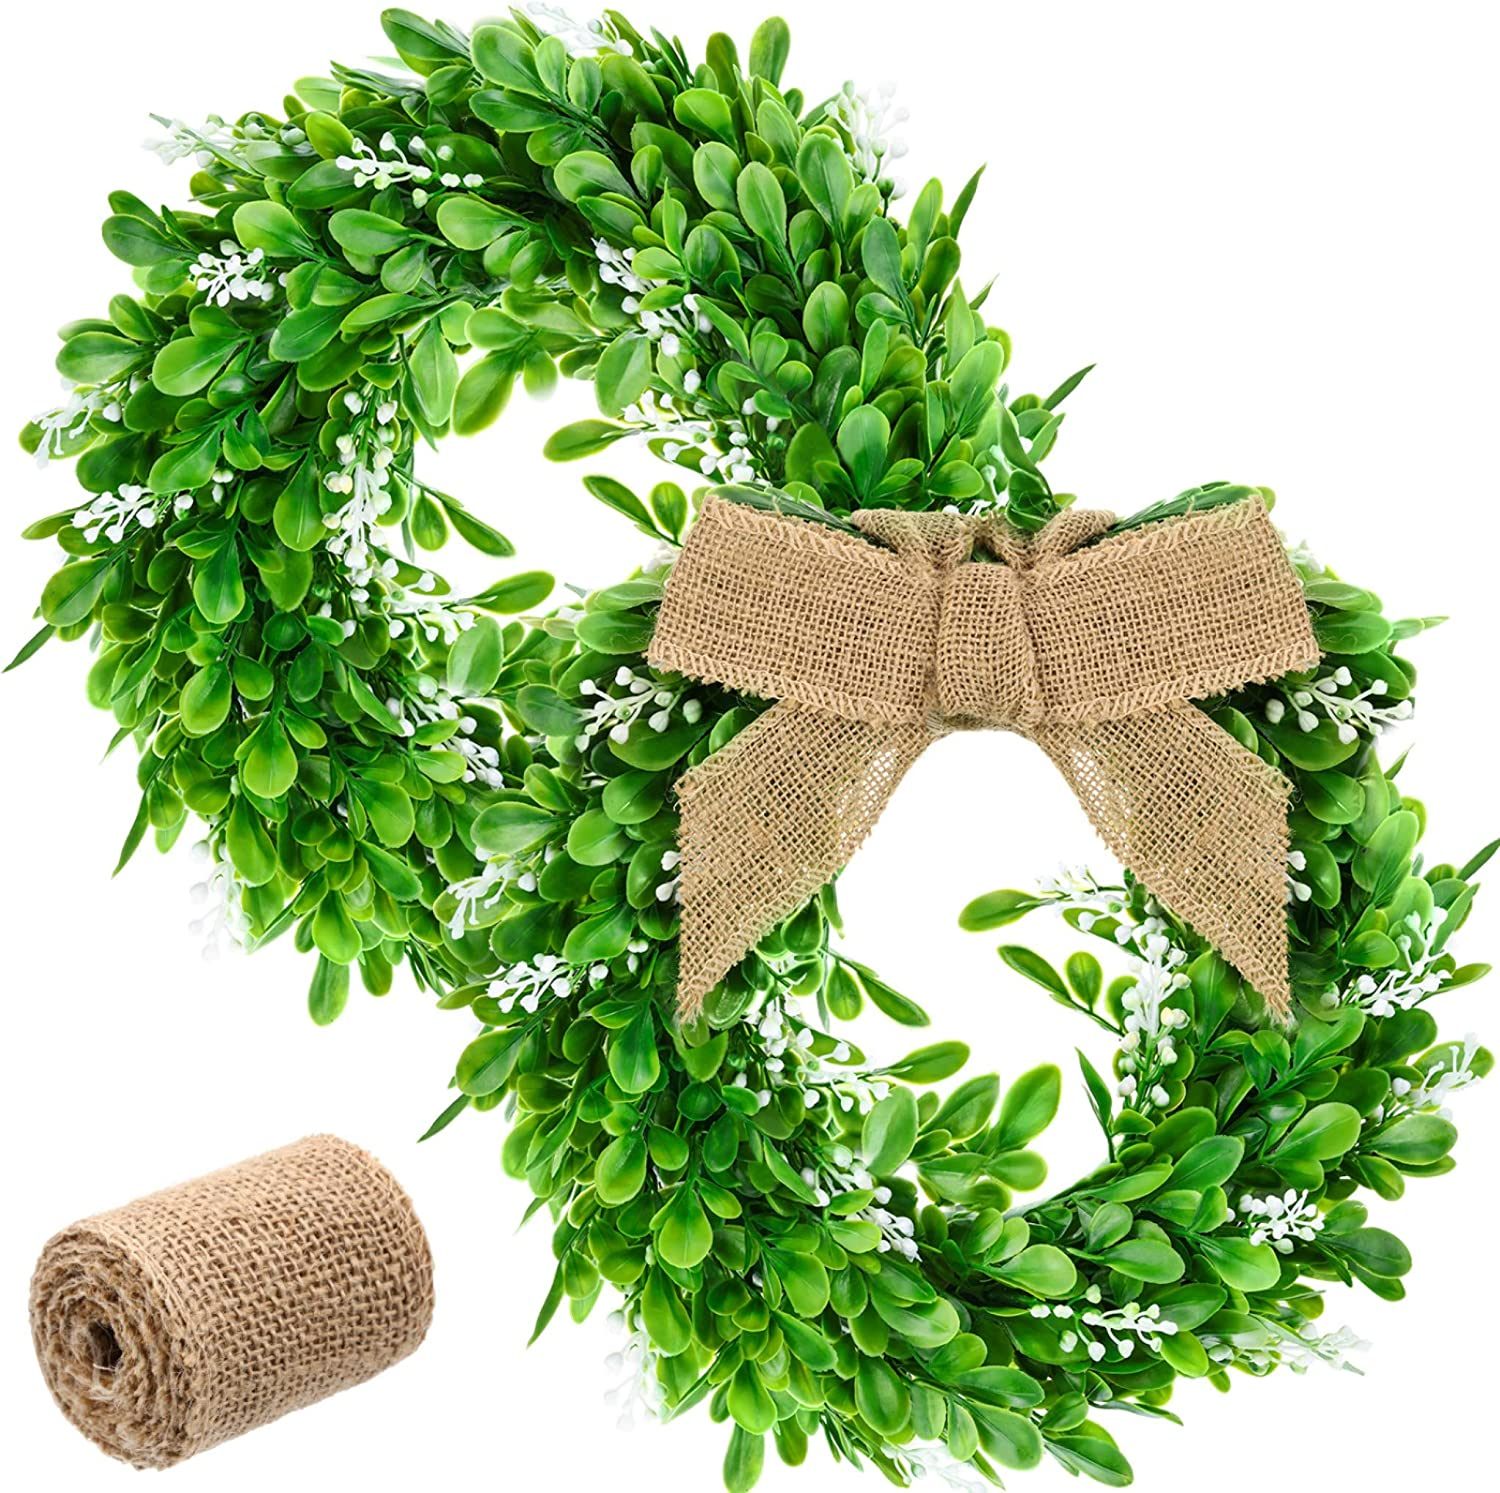 WILLBOND 2 Pieces 11.8 Inch Artificial Outdoor Wreath Christmas Wreath Green Leaves Wreath with 16 Feet Sackcloth for Front Door Christmas Decoration Farmhouse Wall Window Wedding Party